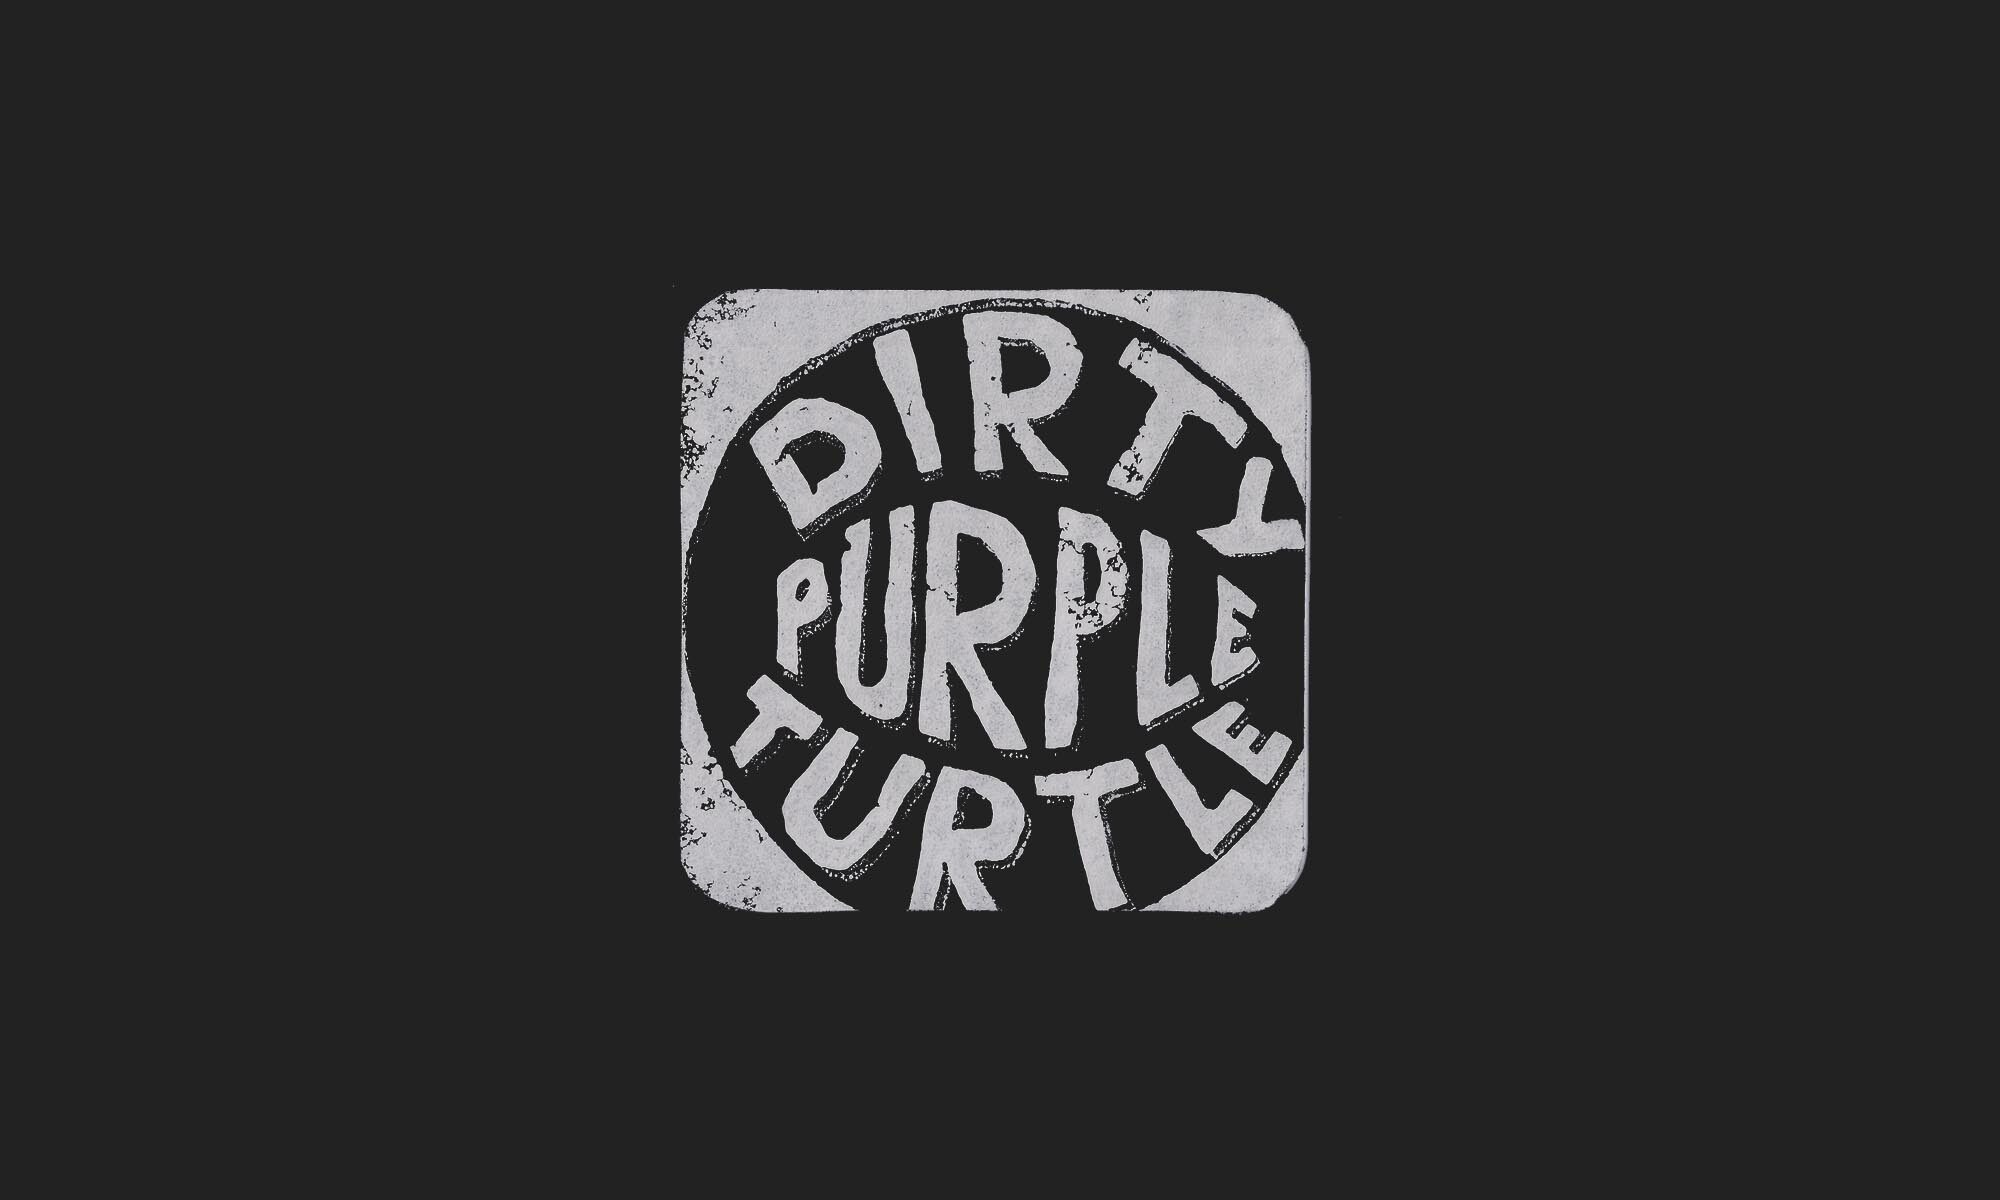 DIRTY PURPLE TURTLE